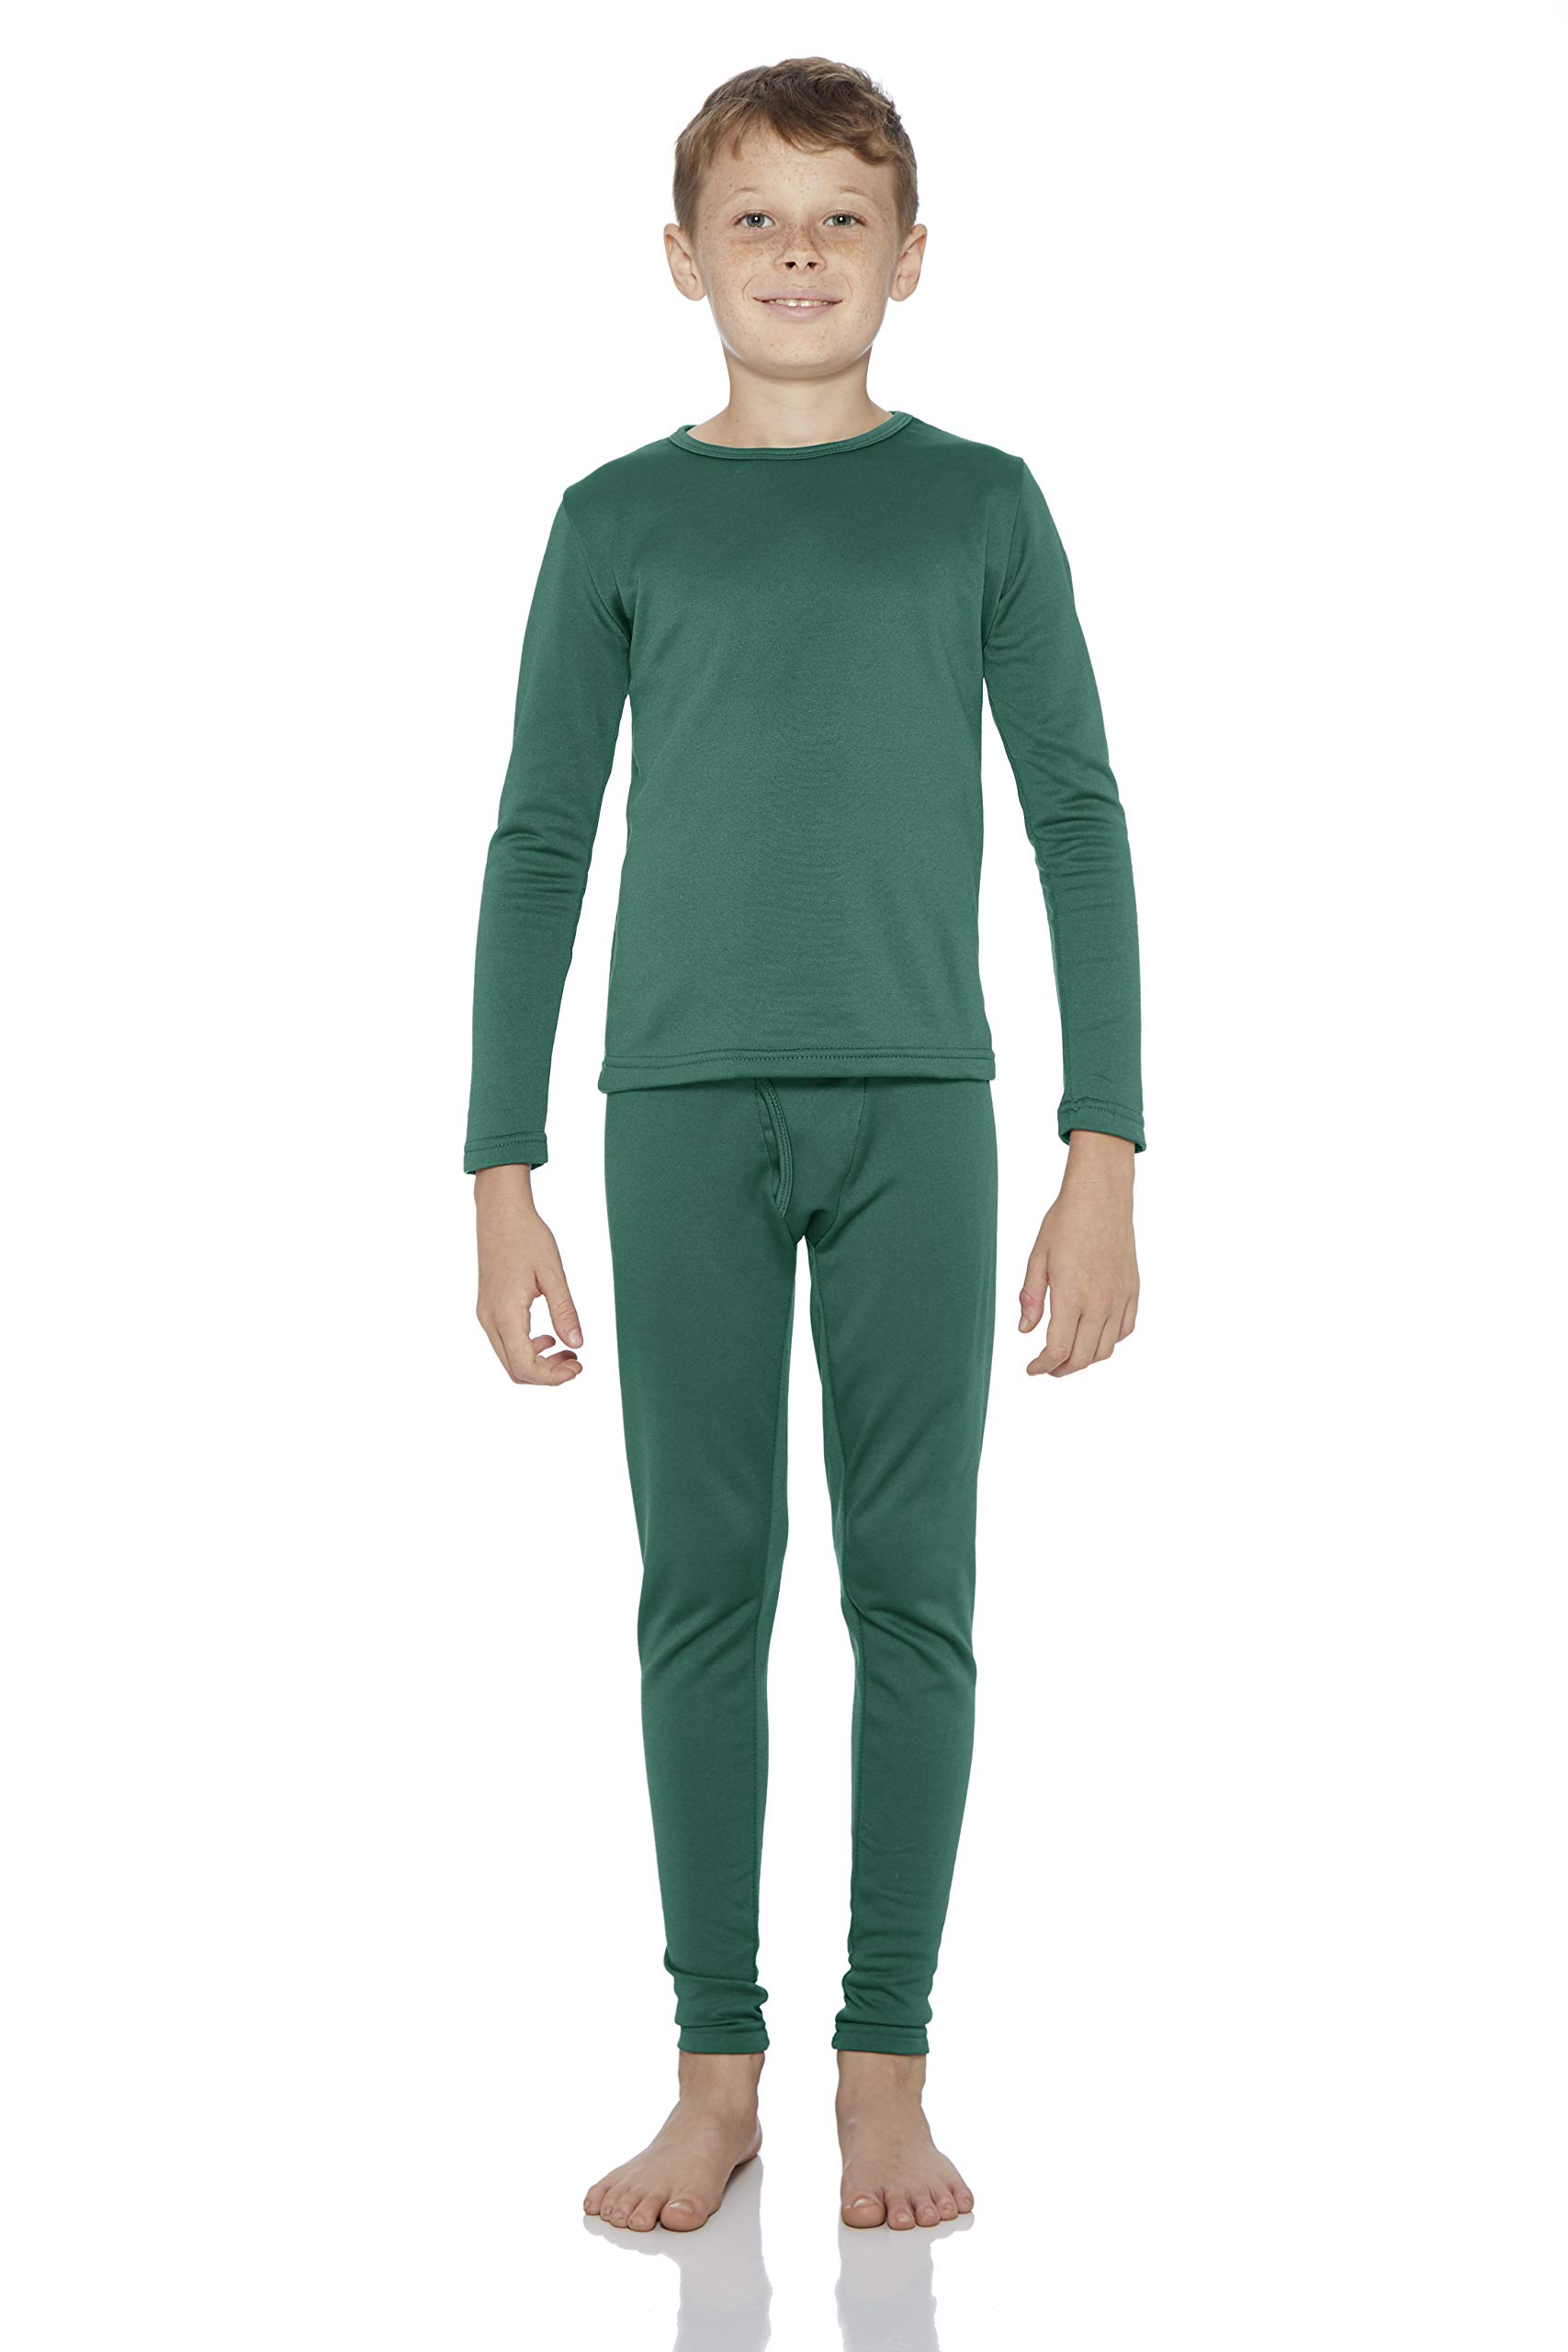 Rocky Thermal Underwear for Boys Fleece Lined Thermals Kids Base Layer Long John Set Jade by Rocky